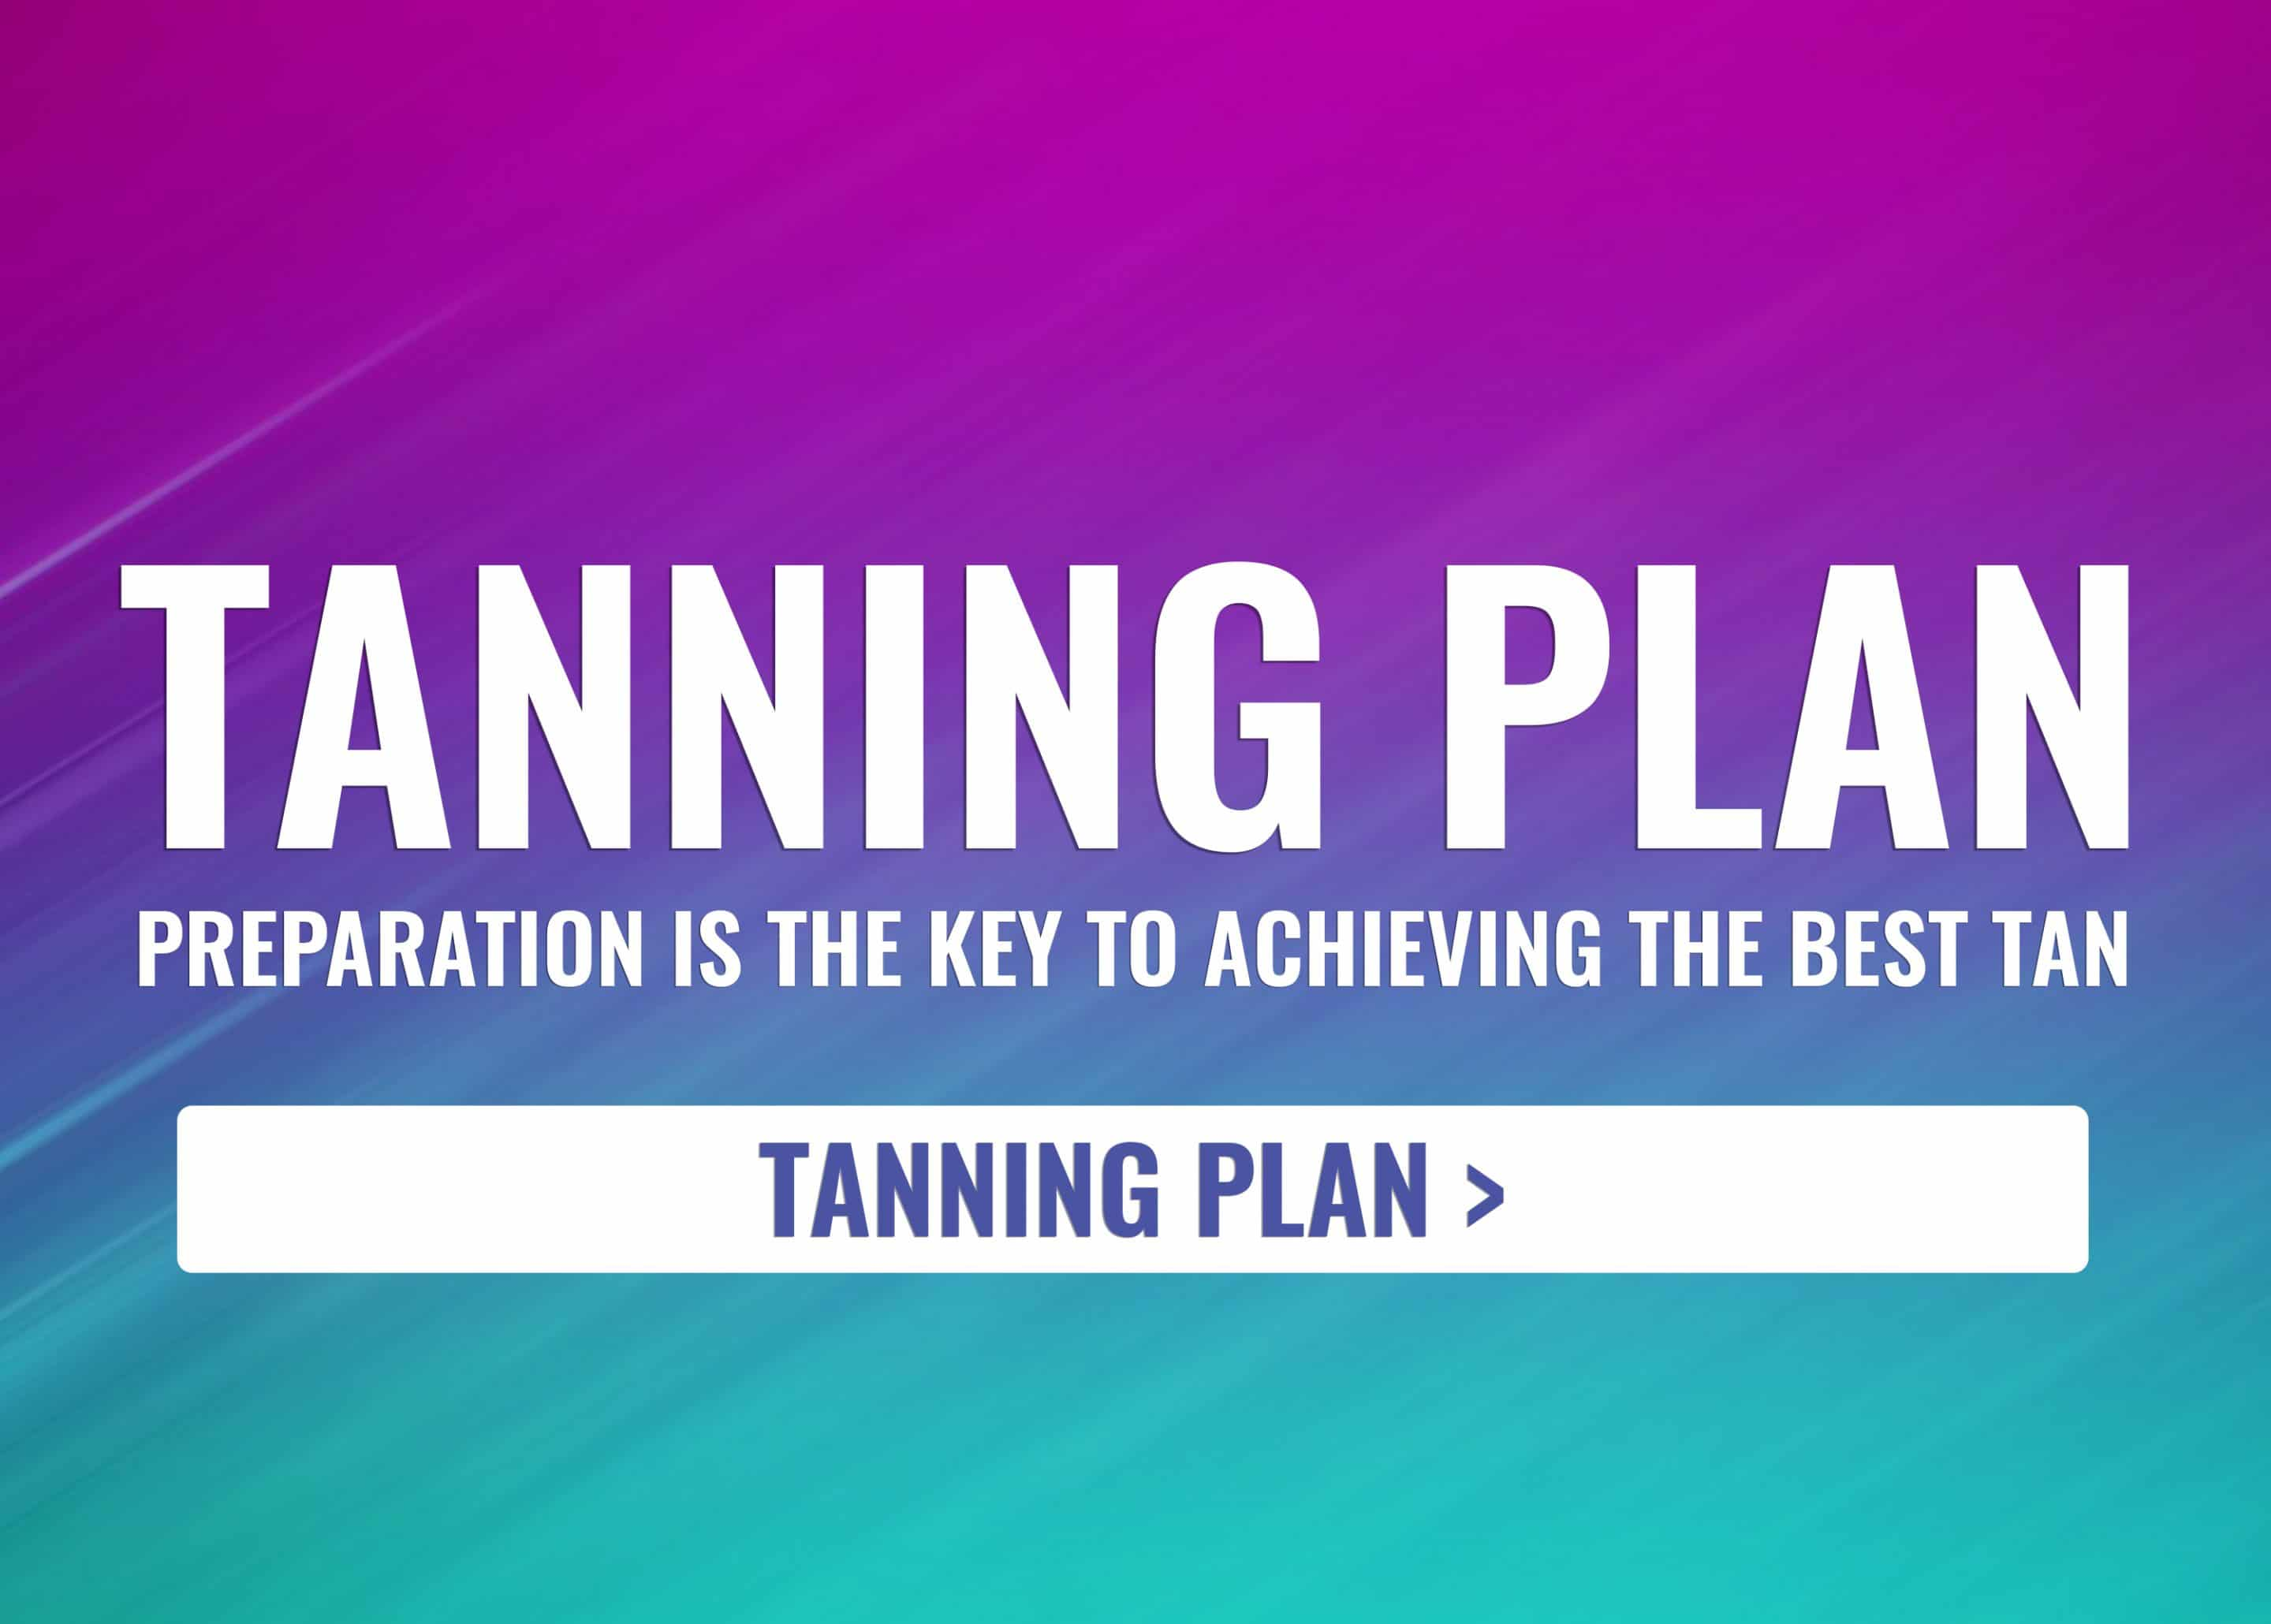 Tanning Guide, Vitamin D & Preparation for the Best Tan